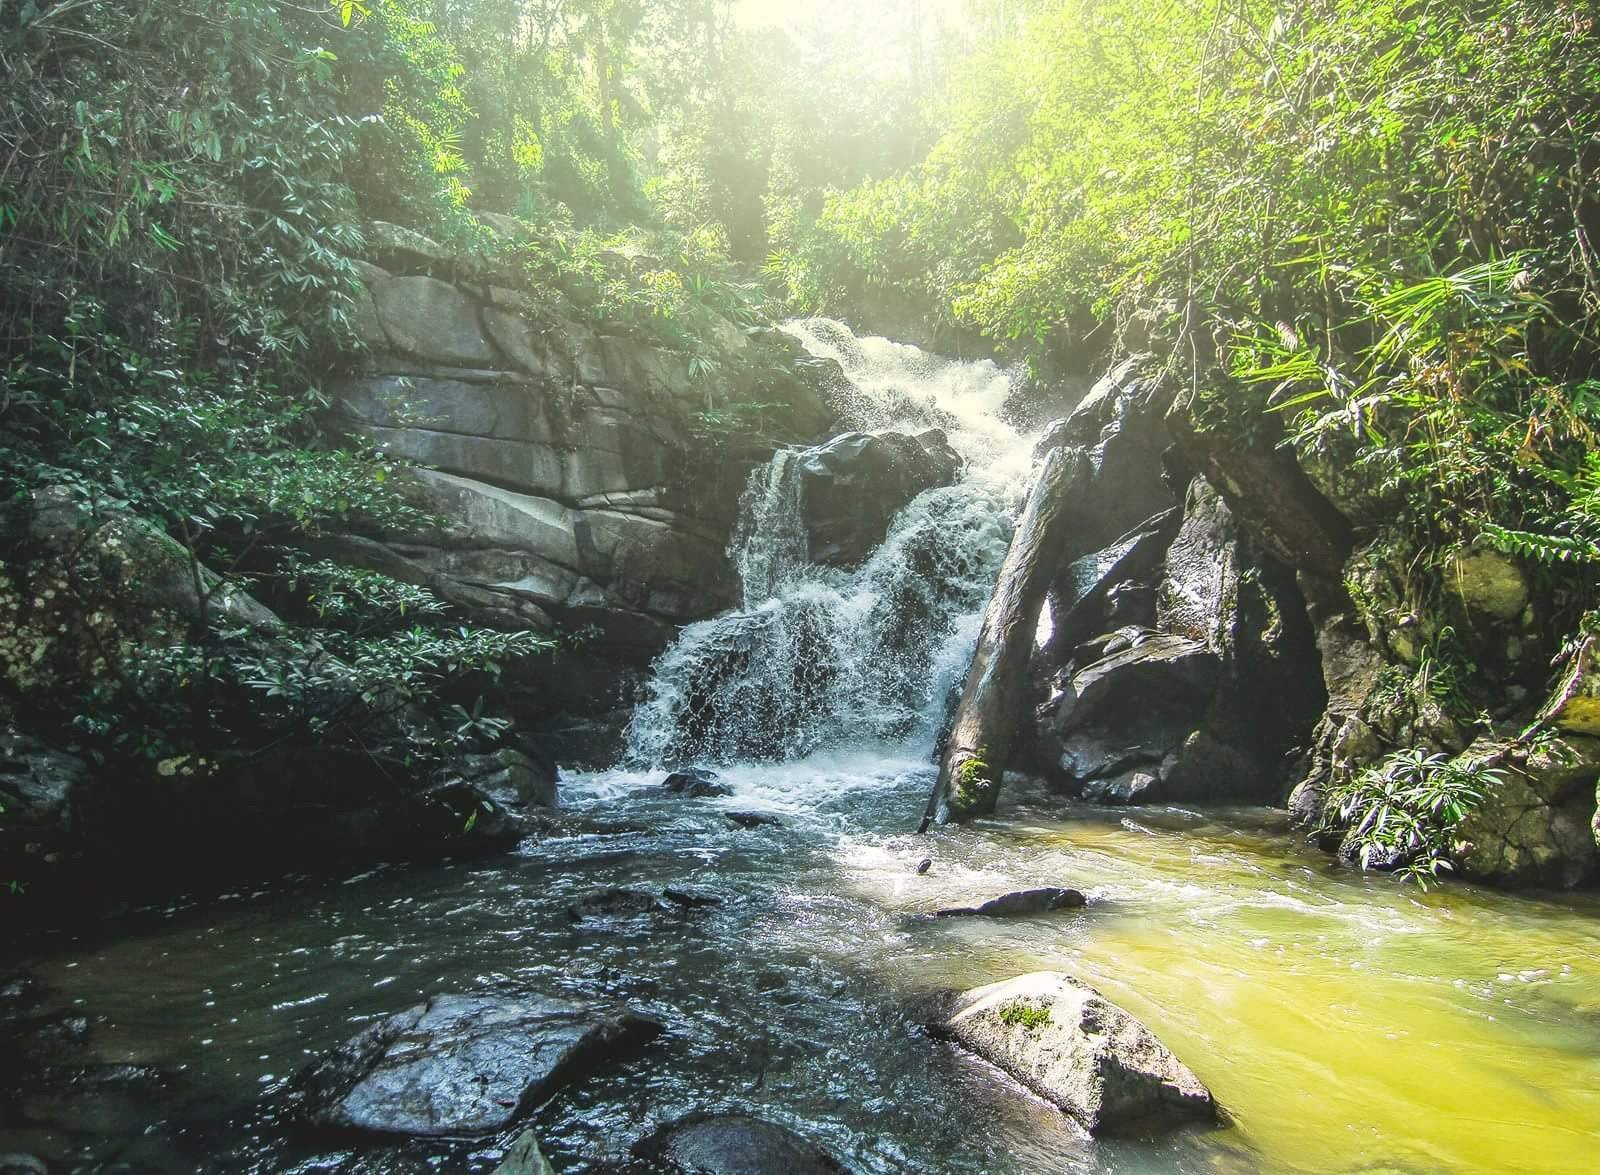 Day trip to the Verdant Rainforest, Secluded Waterfall, and Take Care of the Elephants!